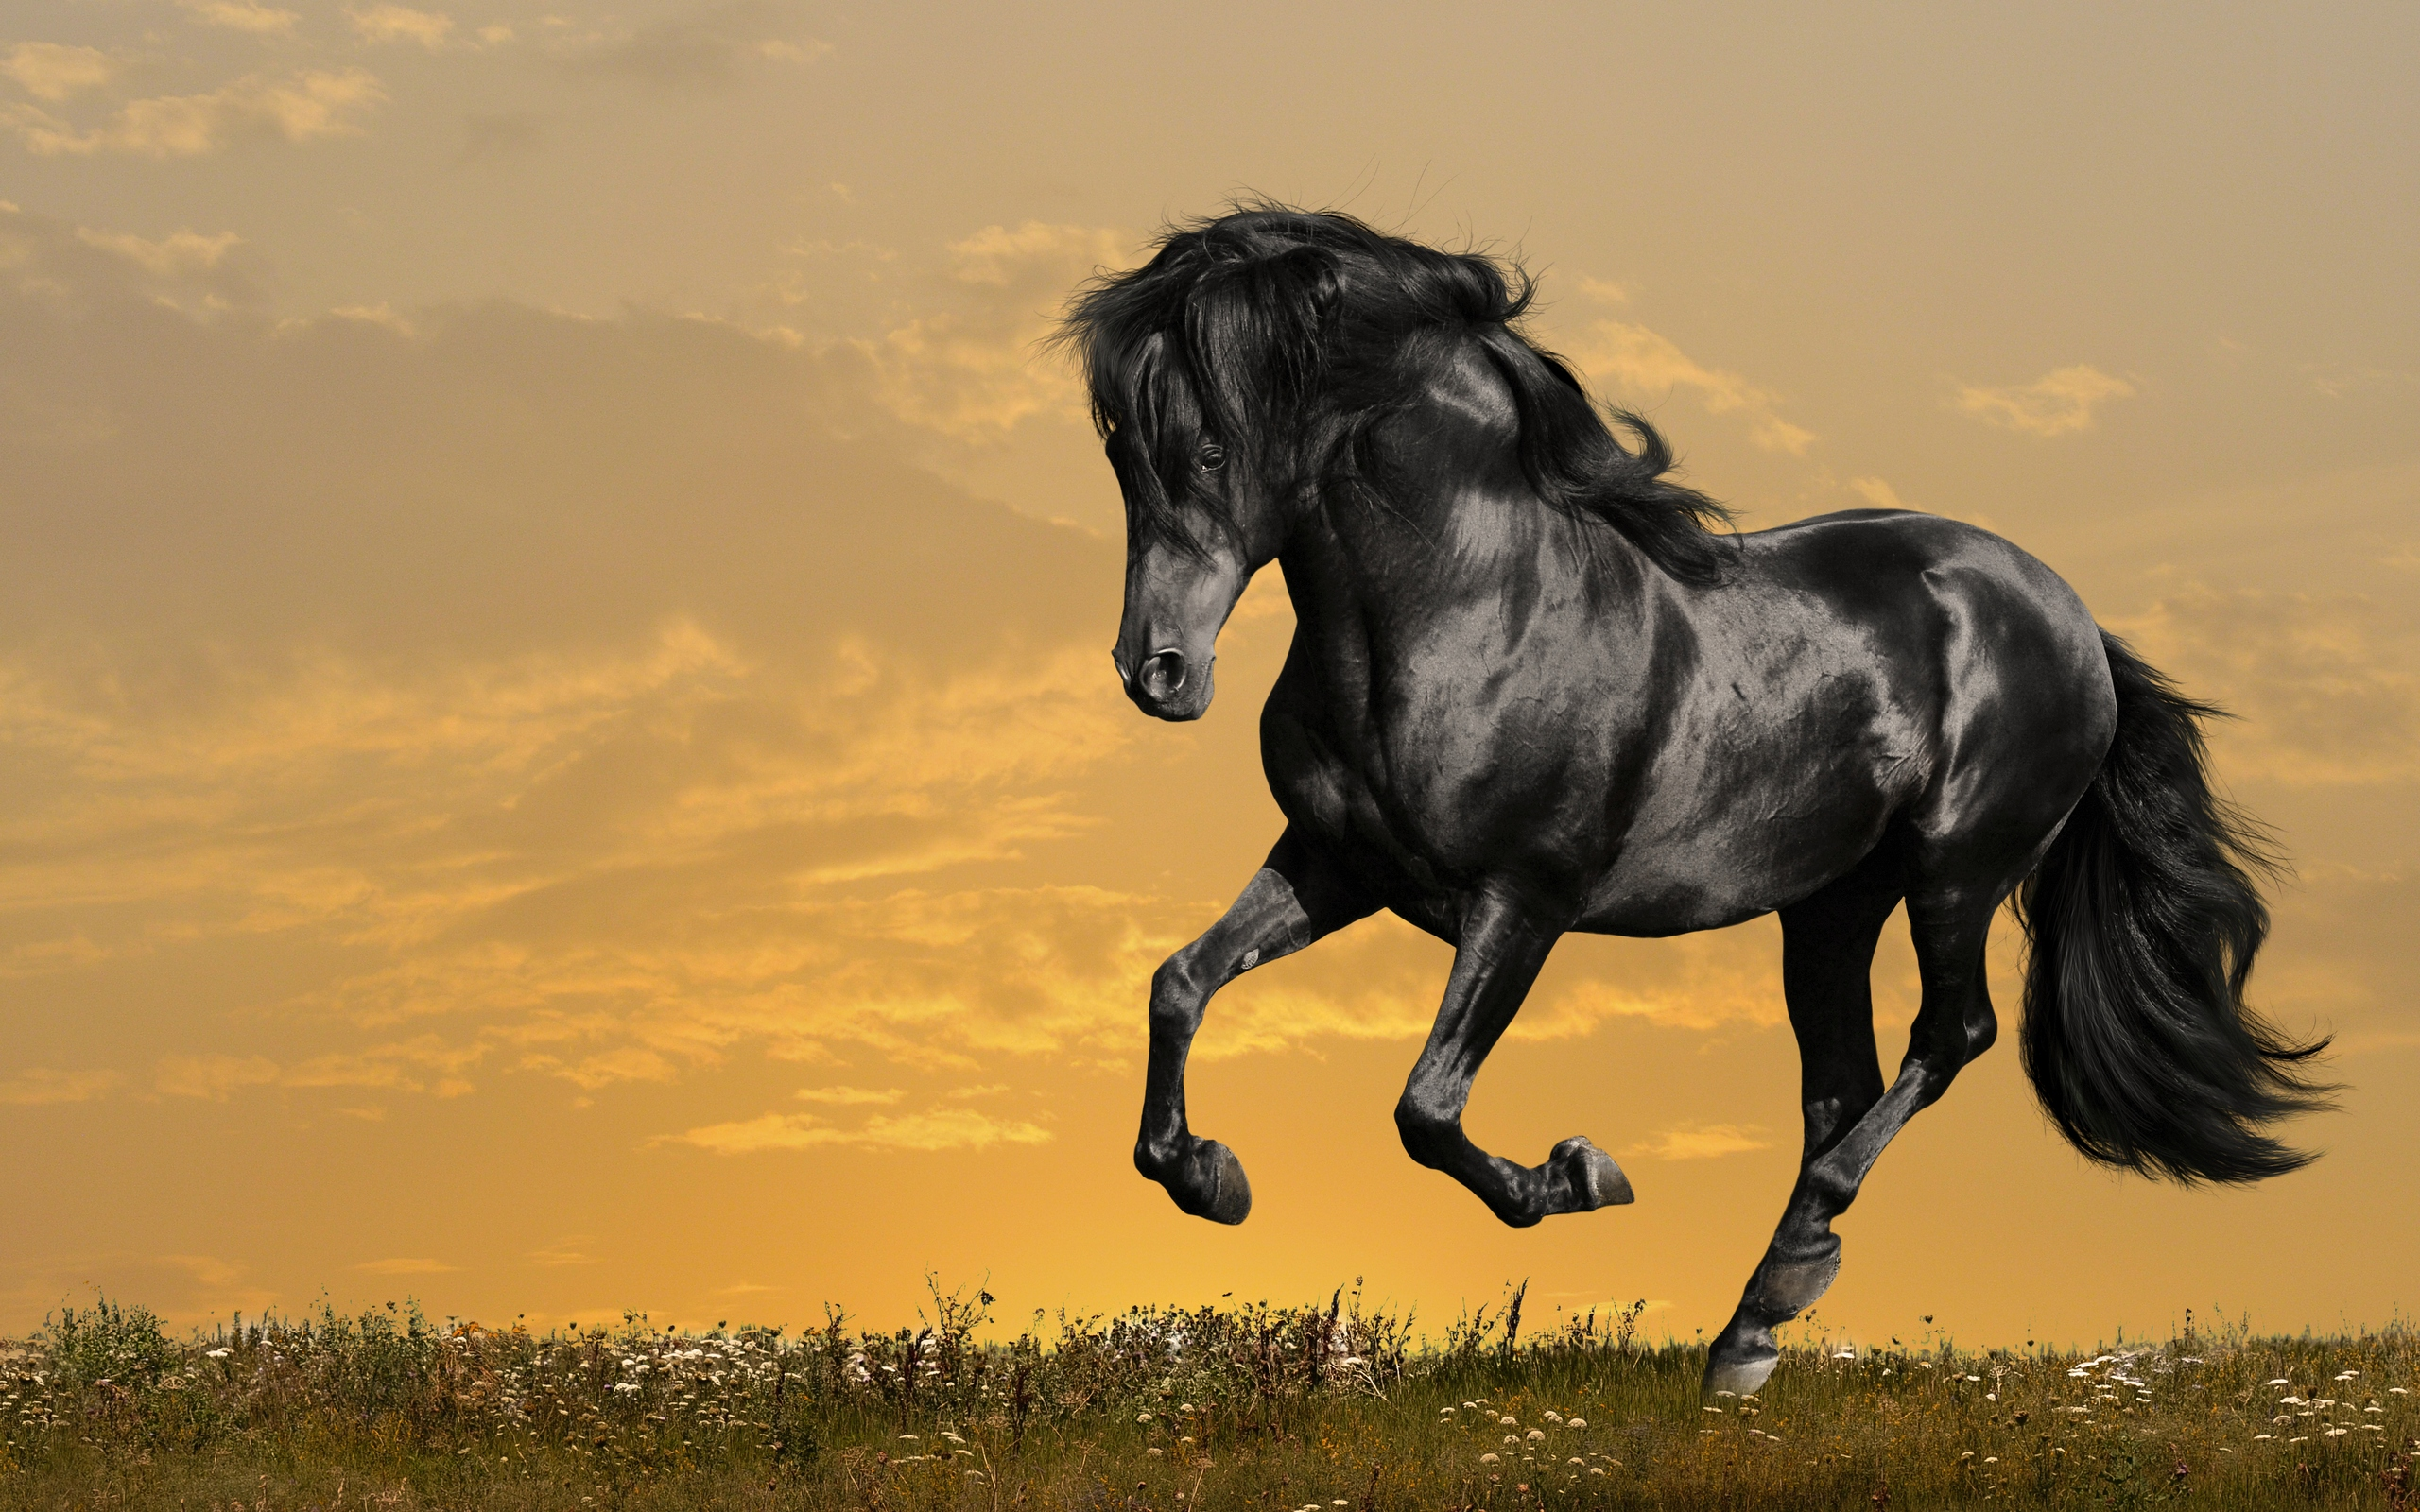 Wallpaper Of Horse